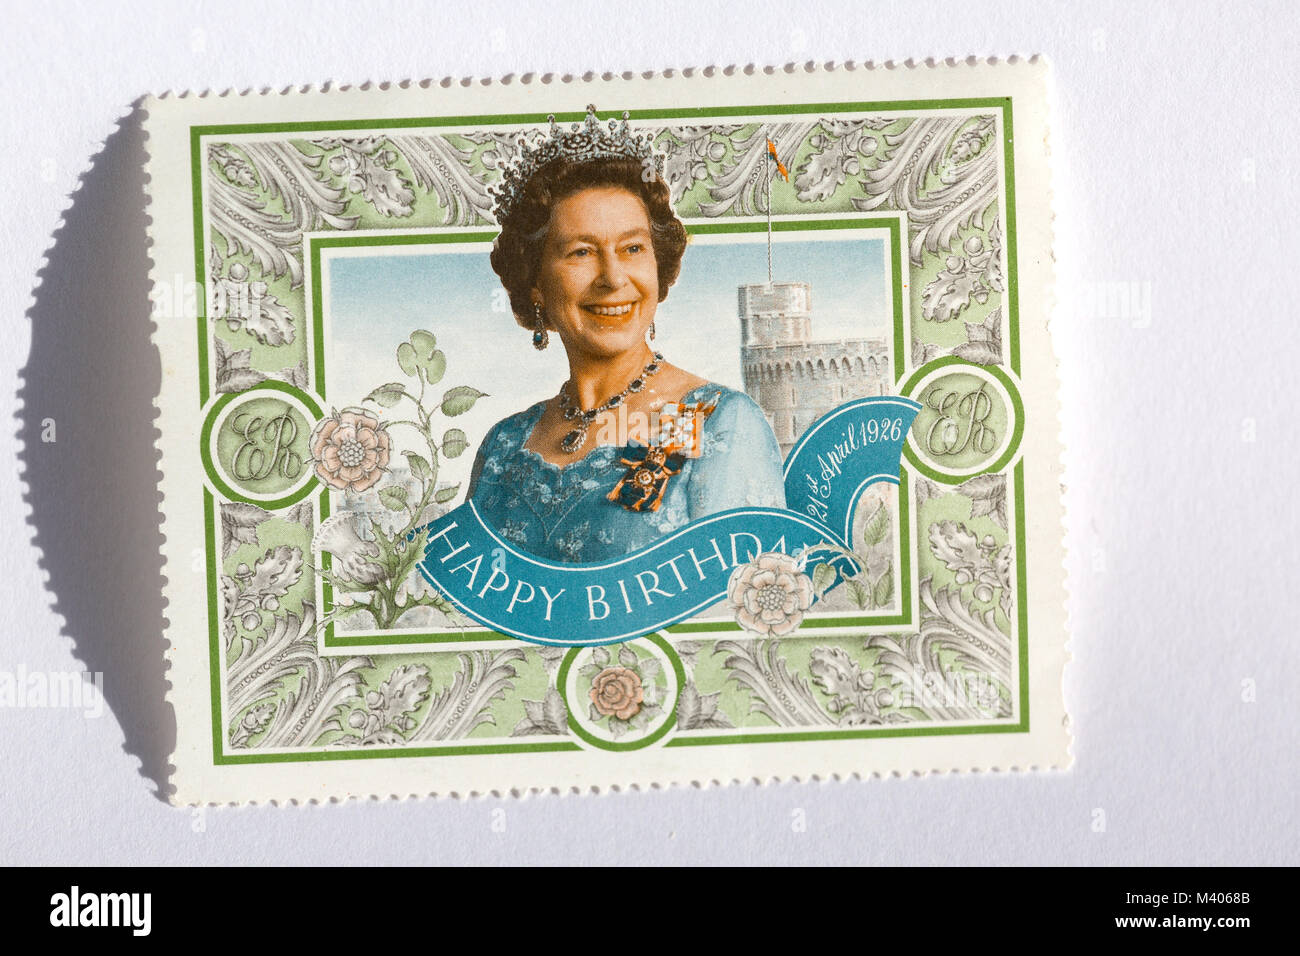 old UK postage stamps celebrating Queen Elizabeth's birthday - Stock Image